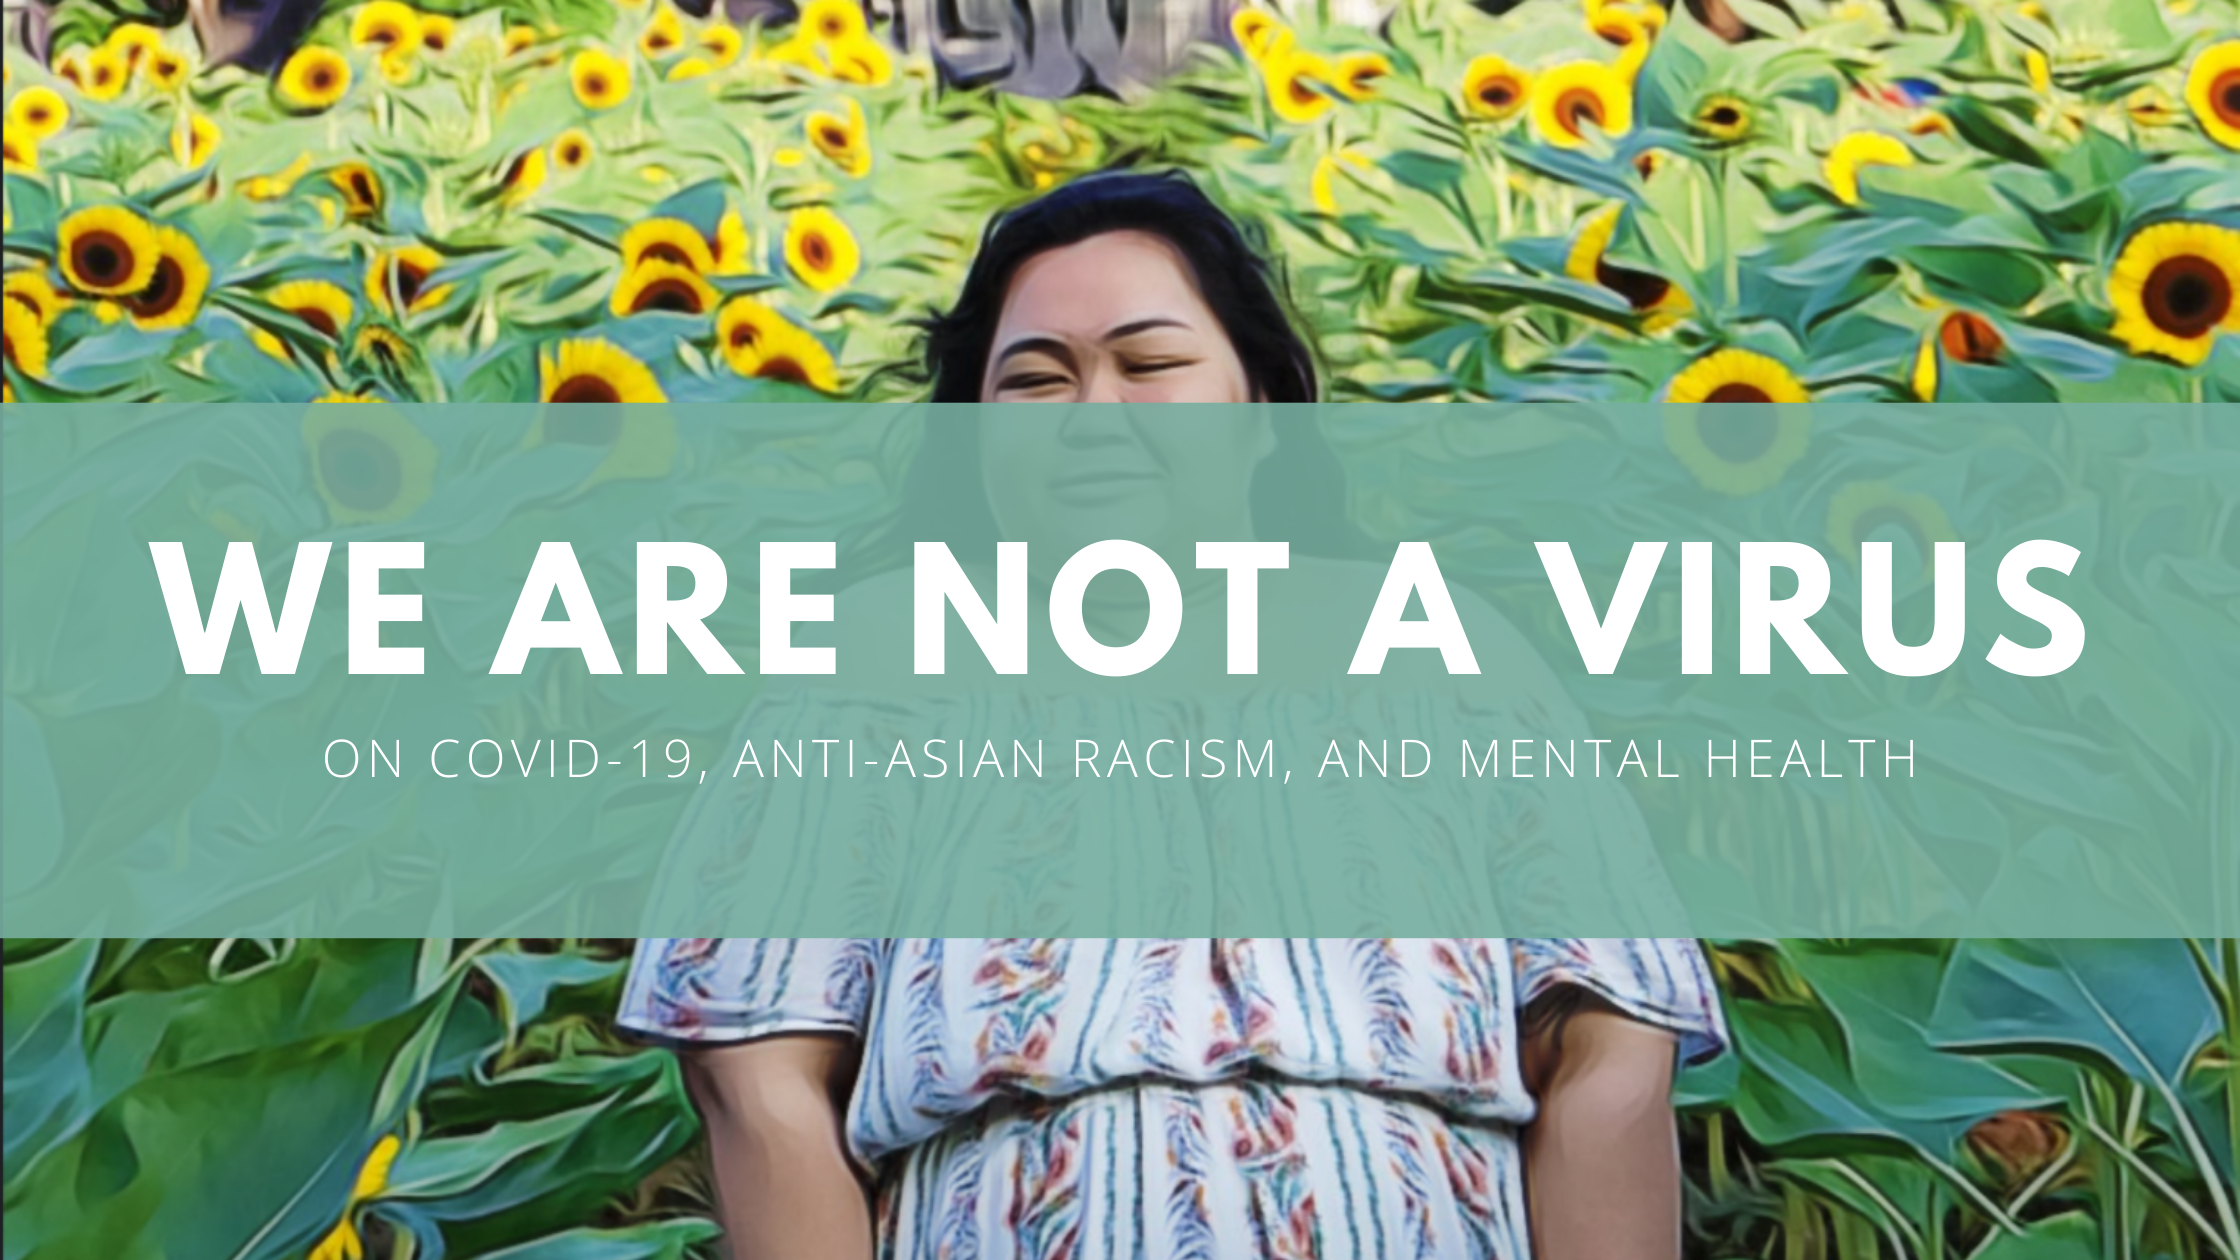 we-are-not-a-virus-on-covid-19-anti-asian-racism-and-mental-health-1_buw9pvkz1gxstut7iy8w-g.png